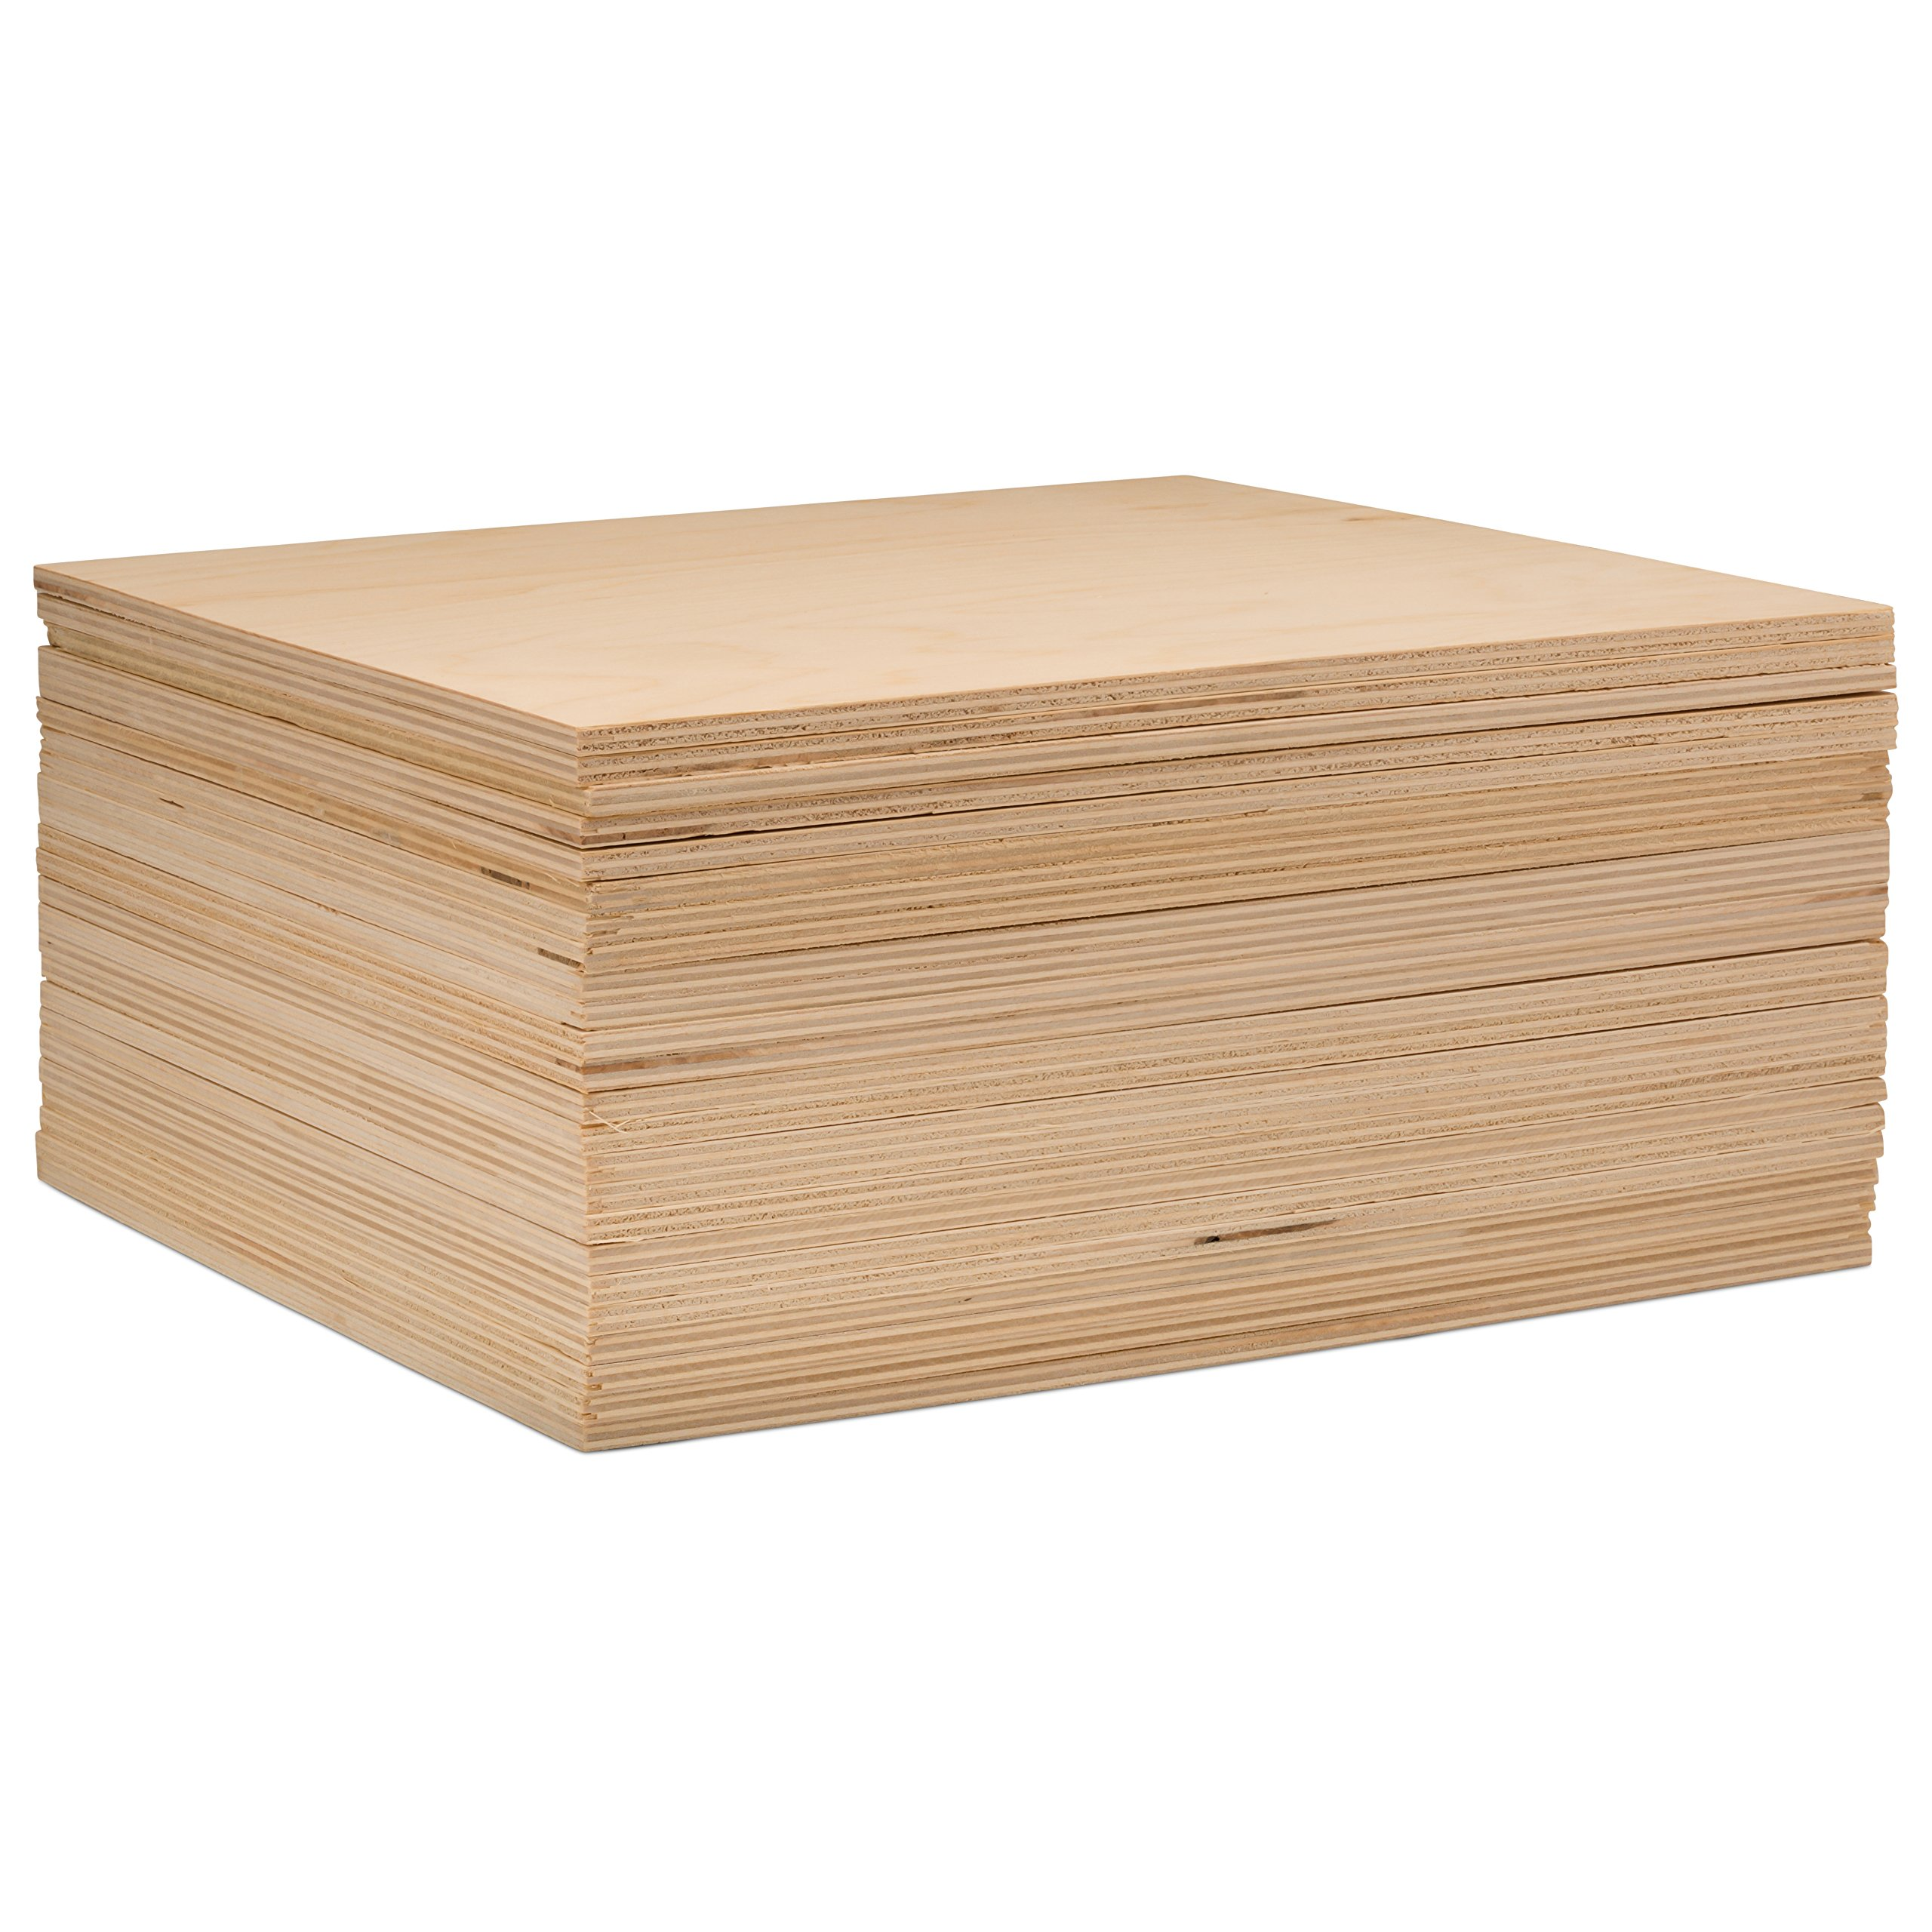 "3 Mm 1/8"" X 12"" X 12"" Premium Baltic Birch Plywood"